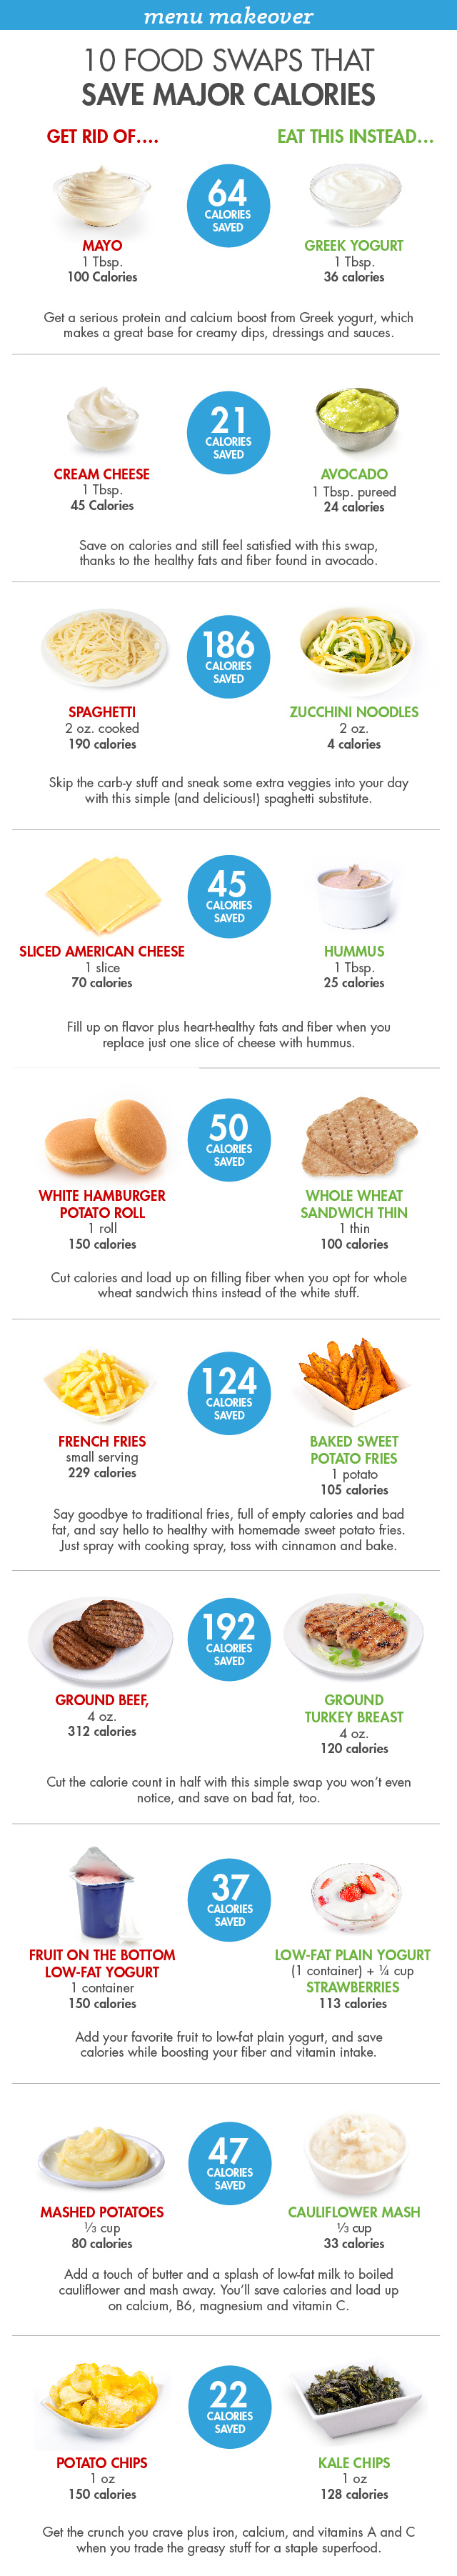 Food-Swaps-save-calories-infographic-plaza